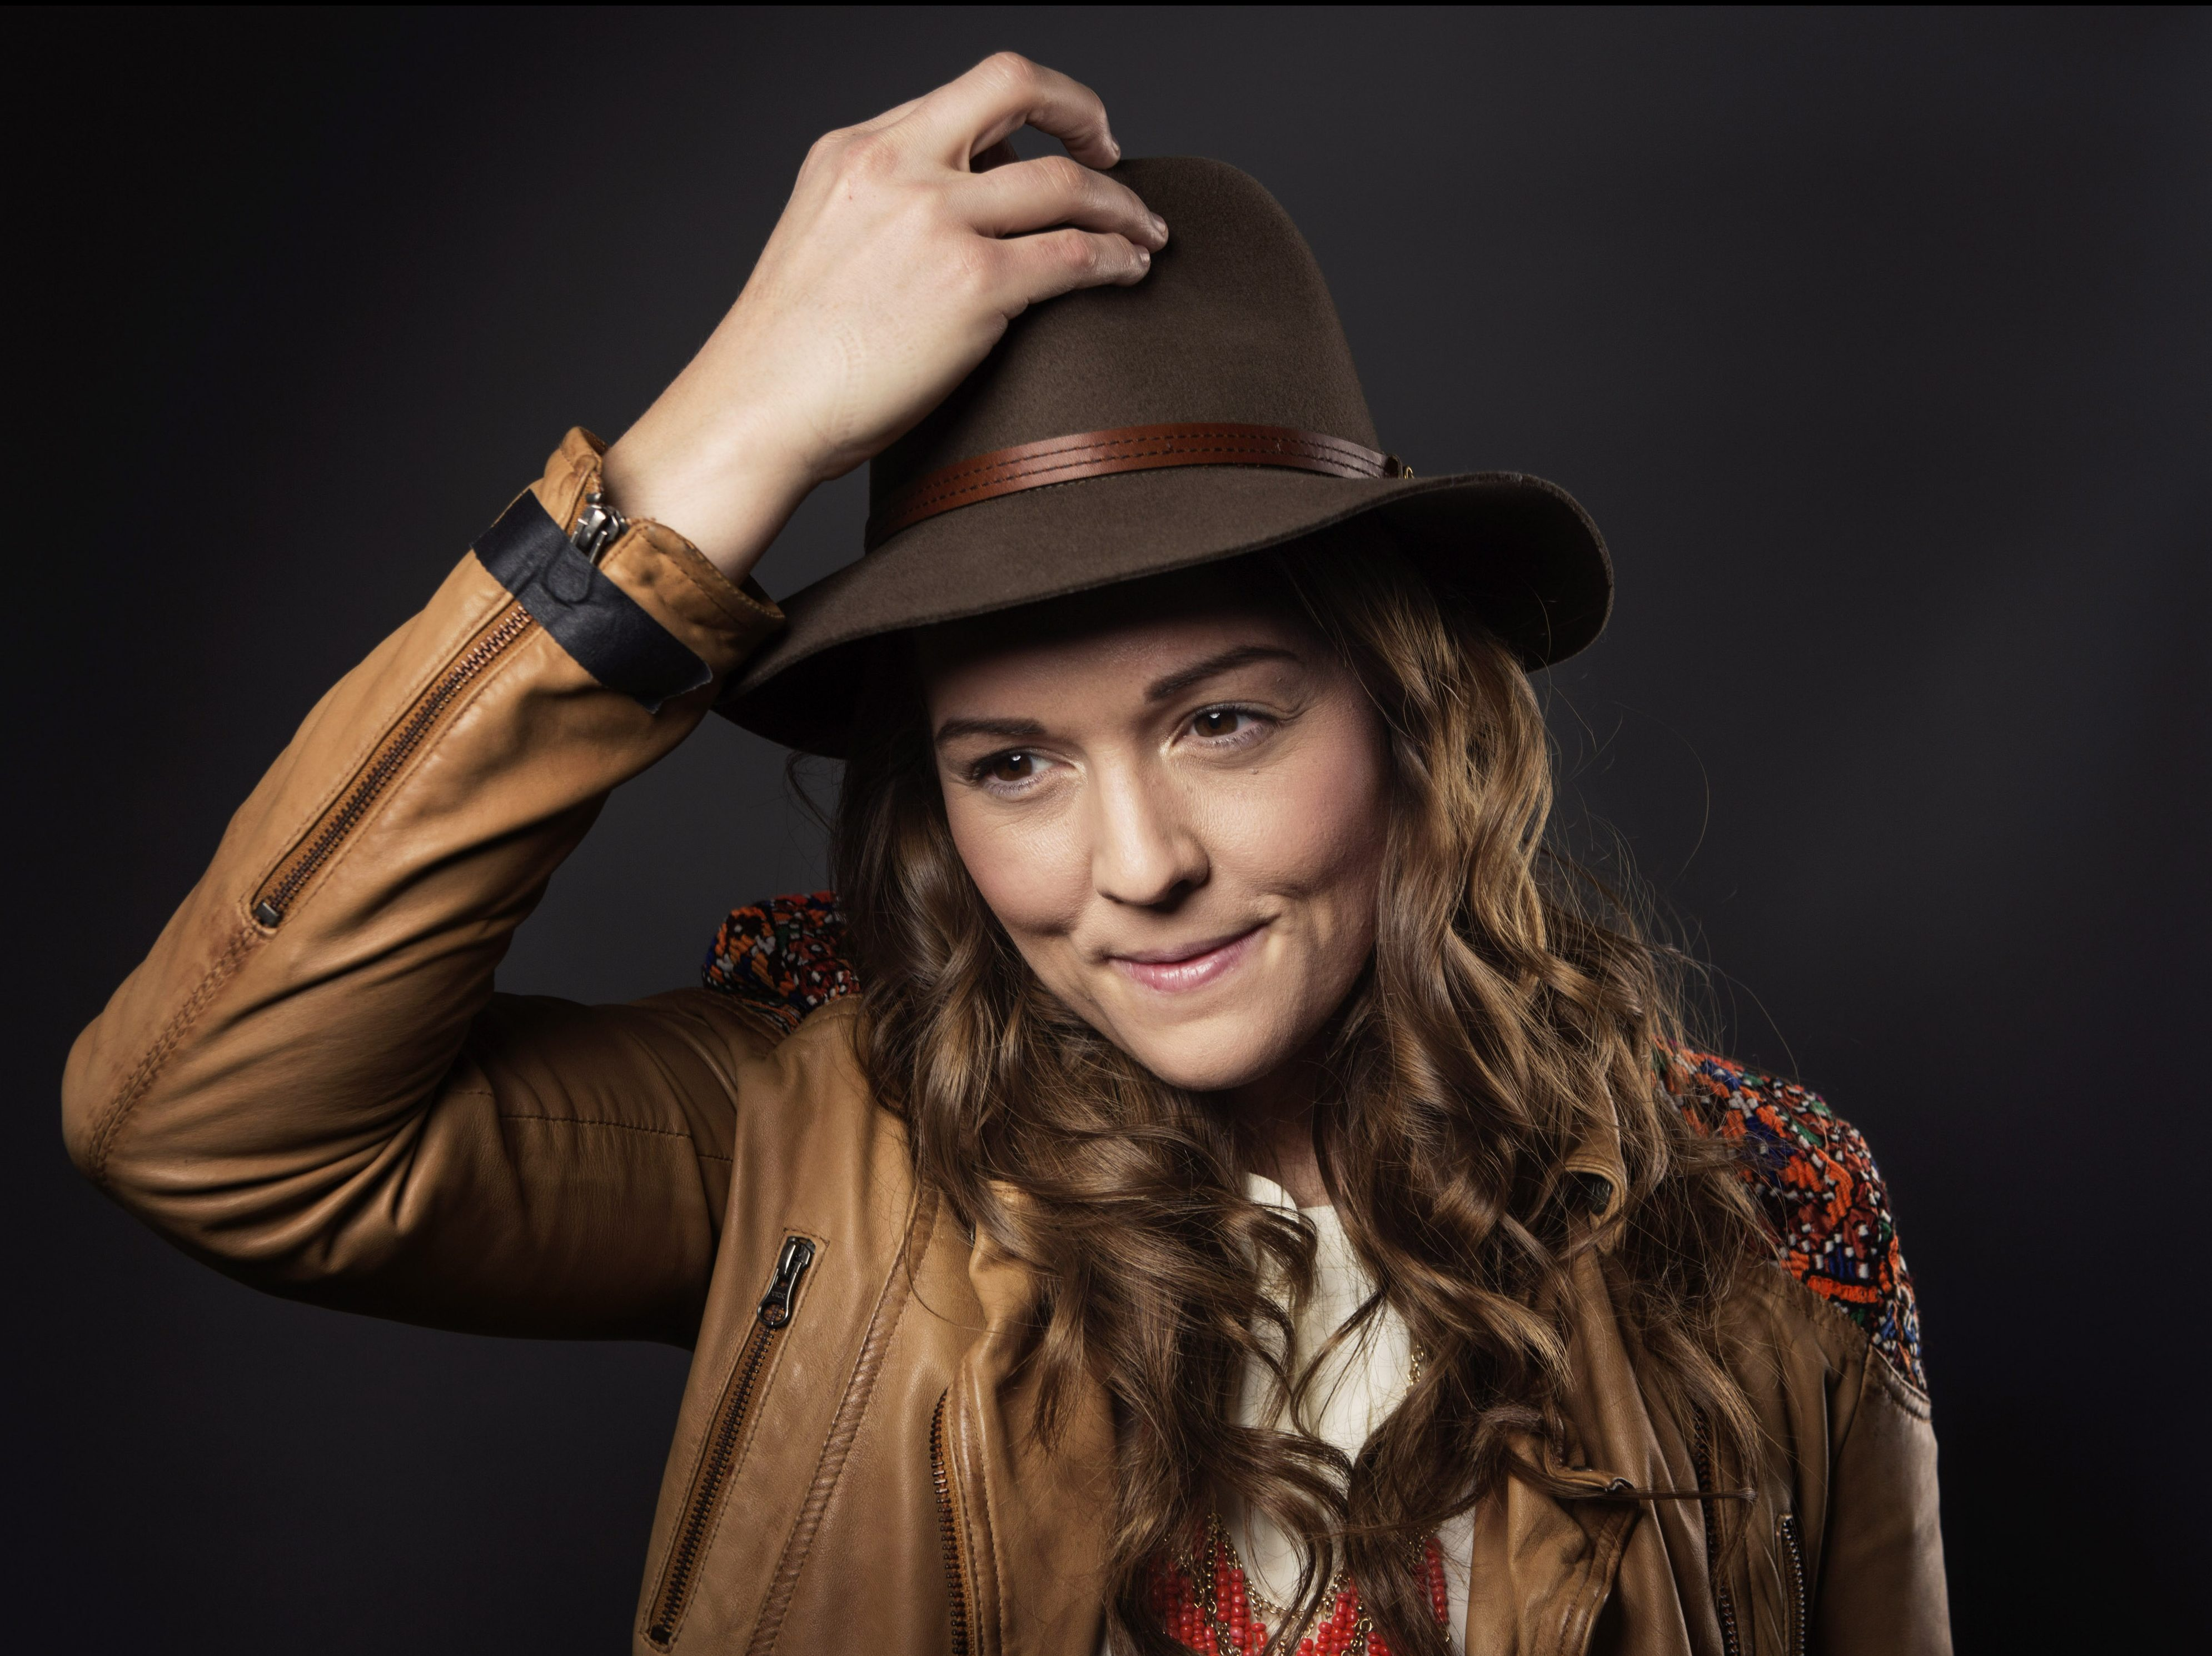 """In this March 12, 2015 photo, singer-songwriter Brandi Carlile poses for a portrait to promote her album """"The Firewatcher's Daughter"""" in New York. (Photo by Taylor Jewell/Invision/AP)"""